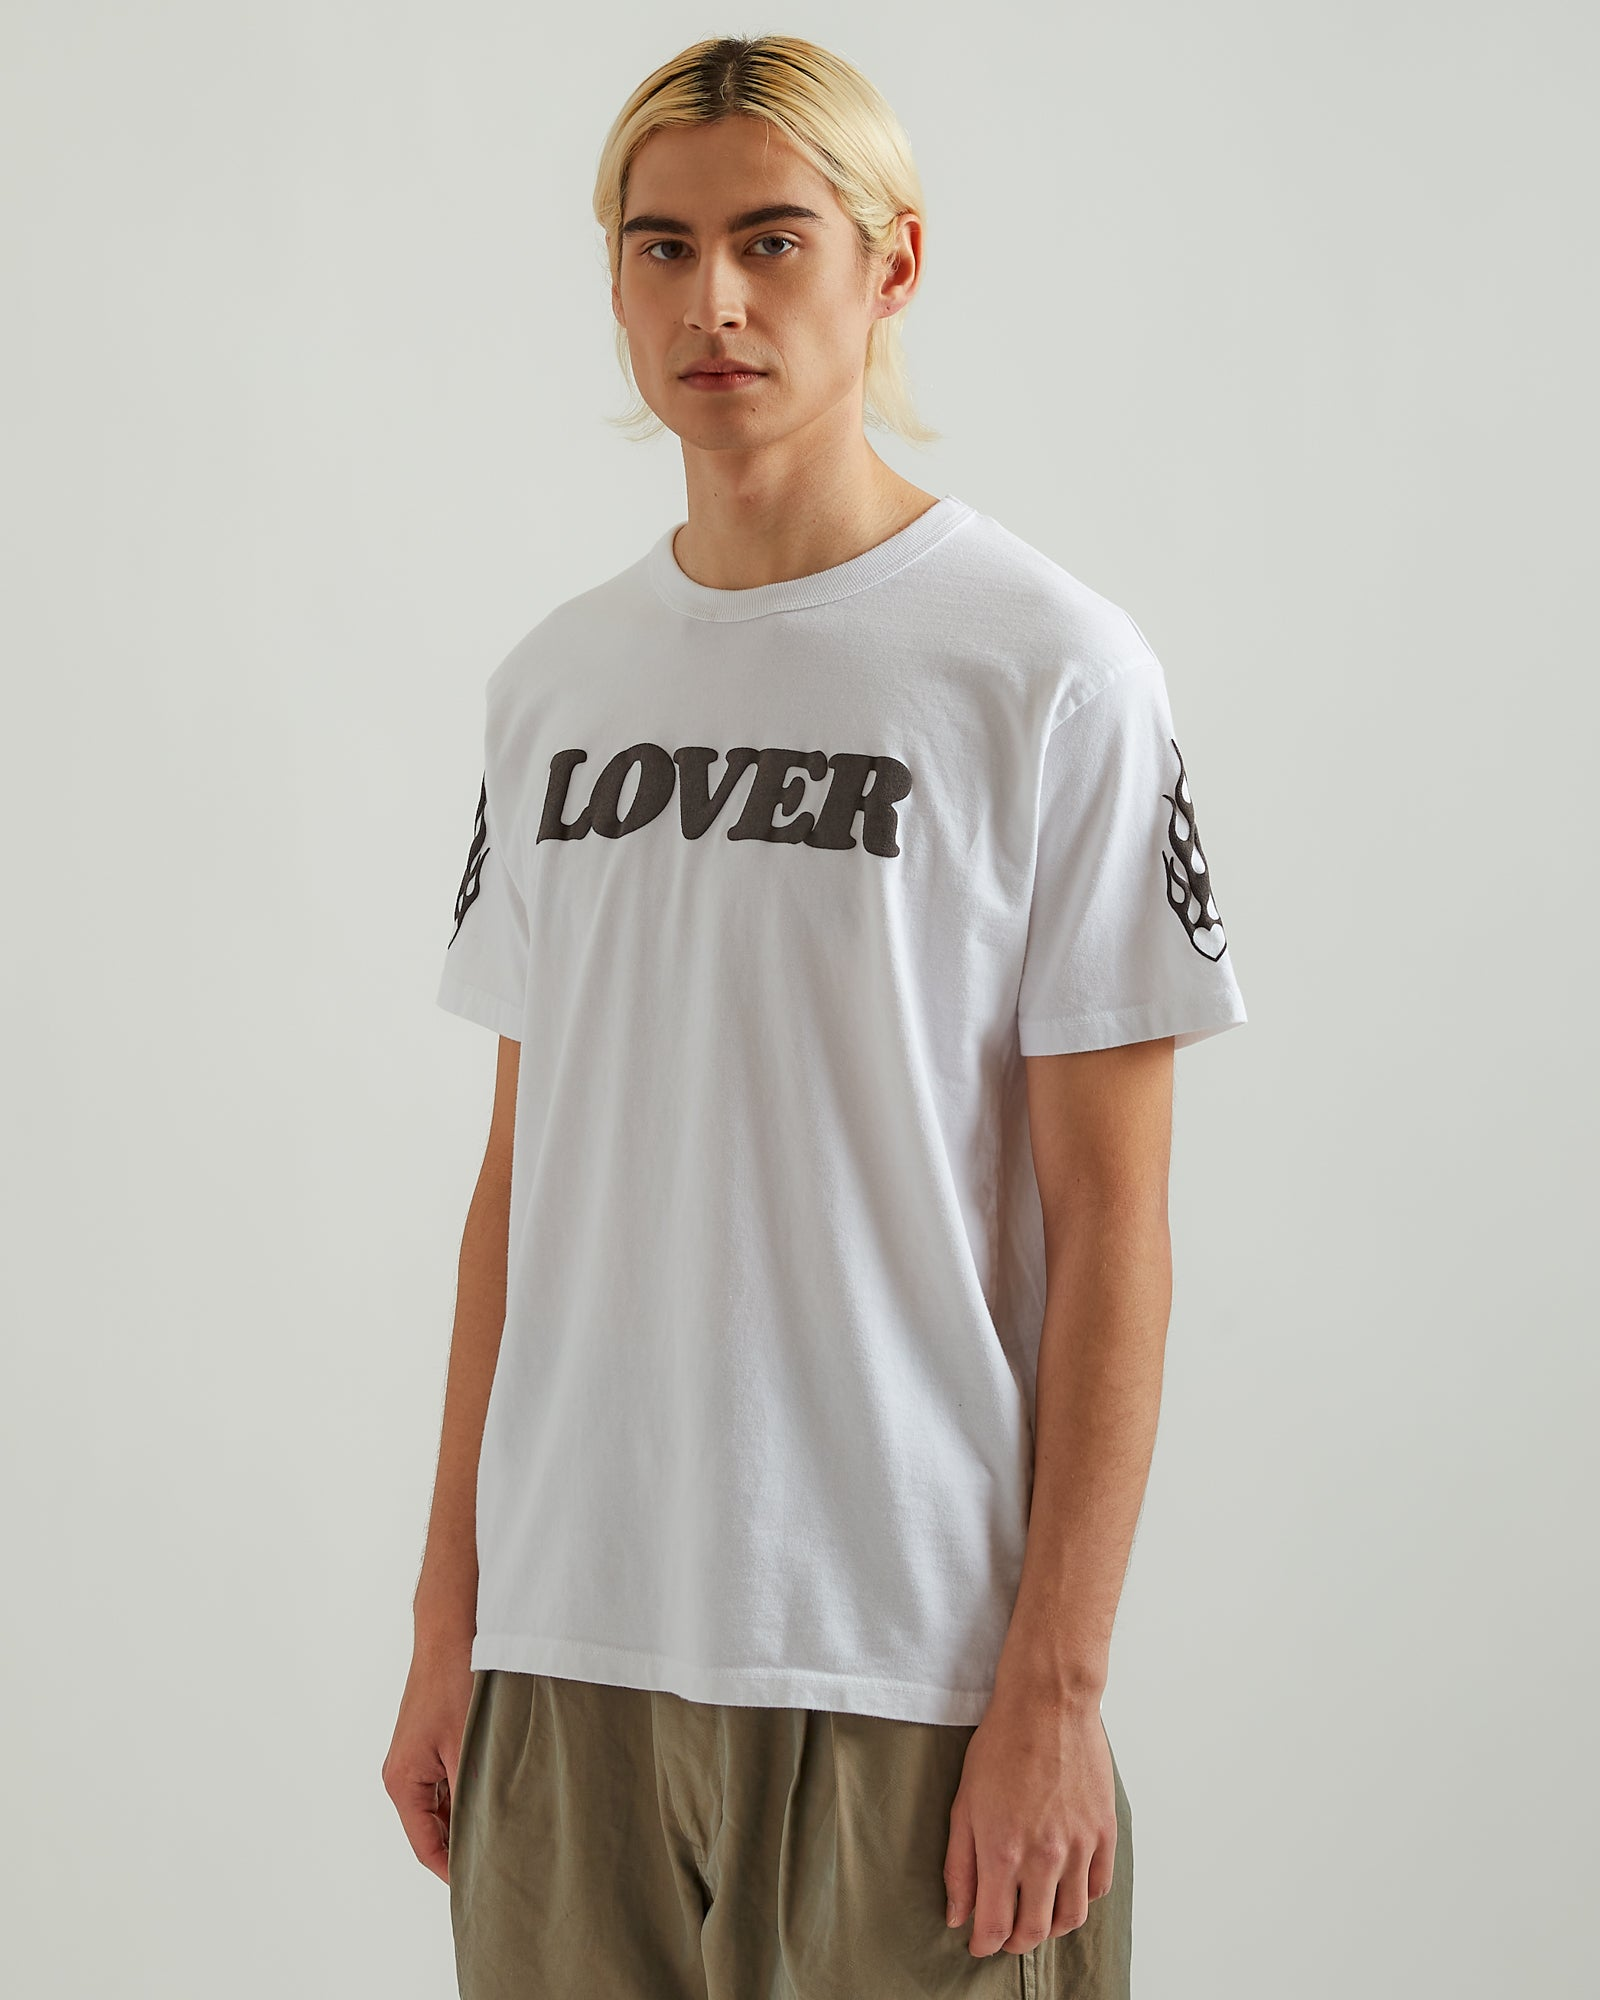 Lover T-Shirt in White with Black Print